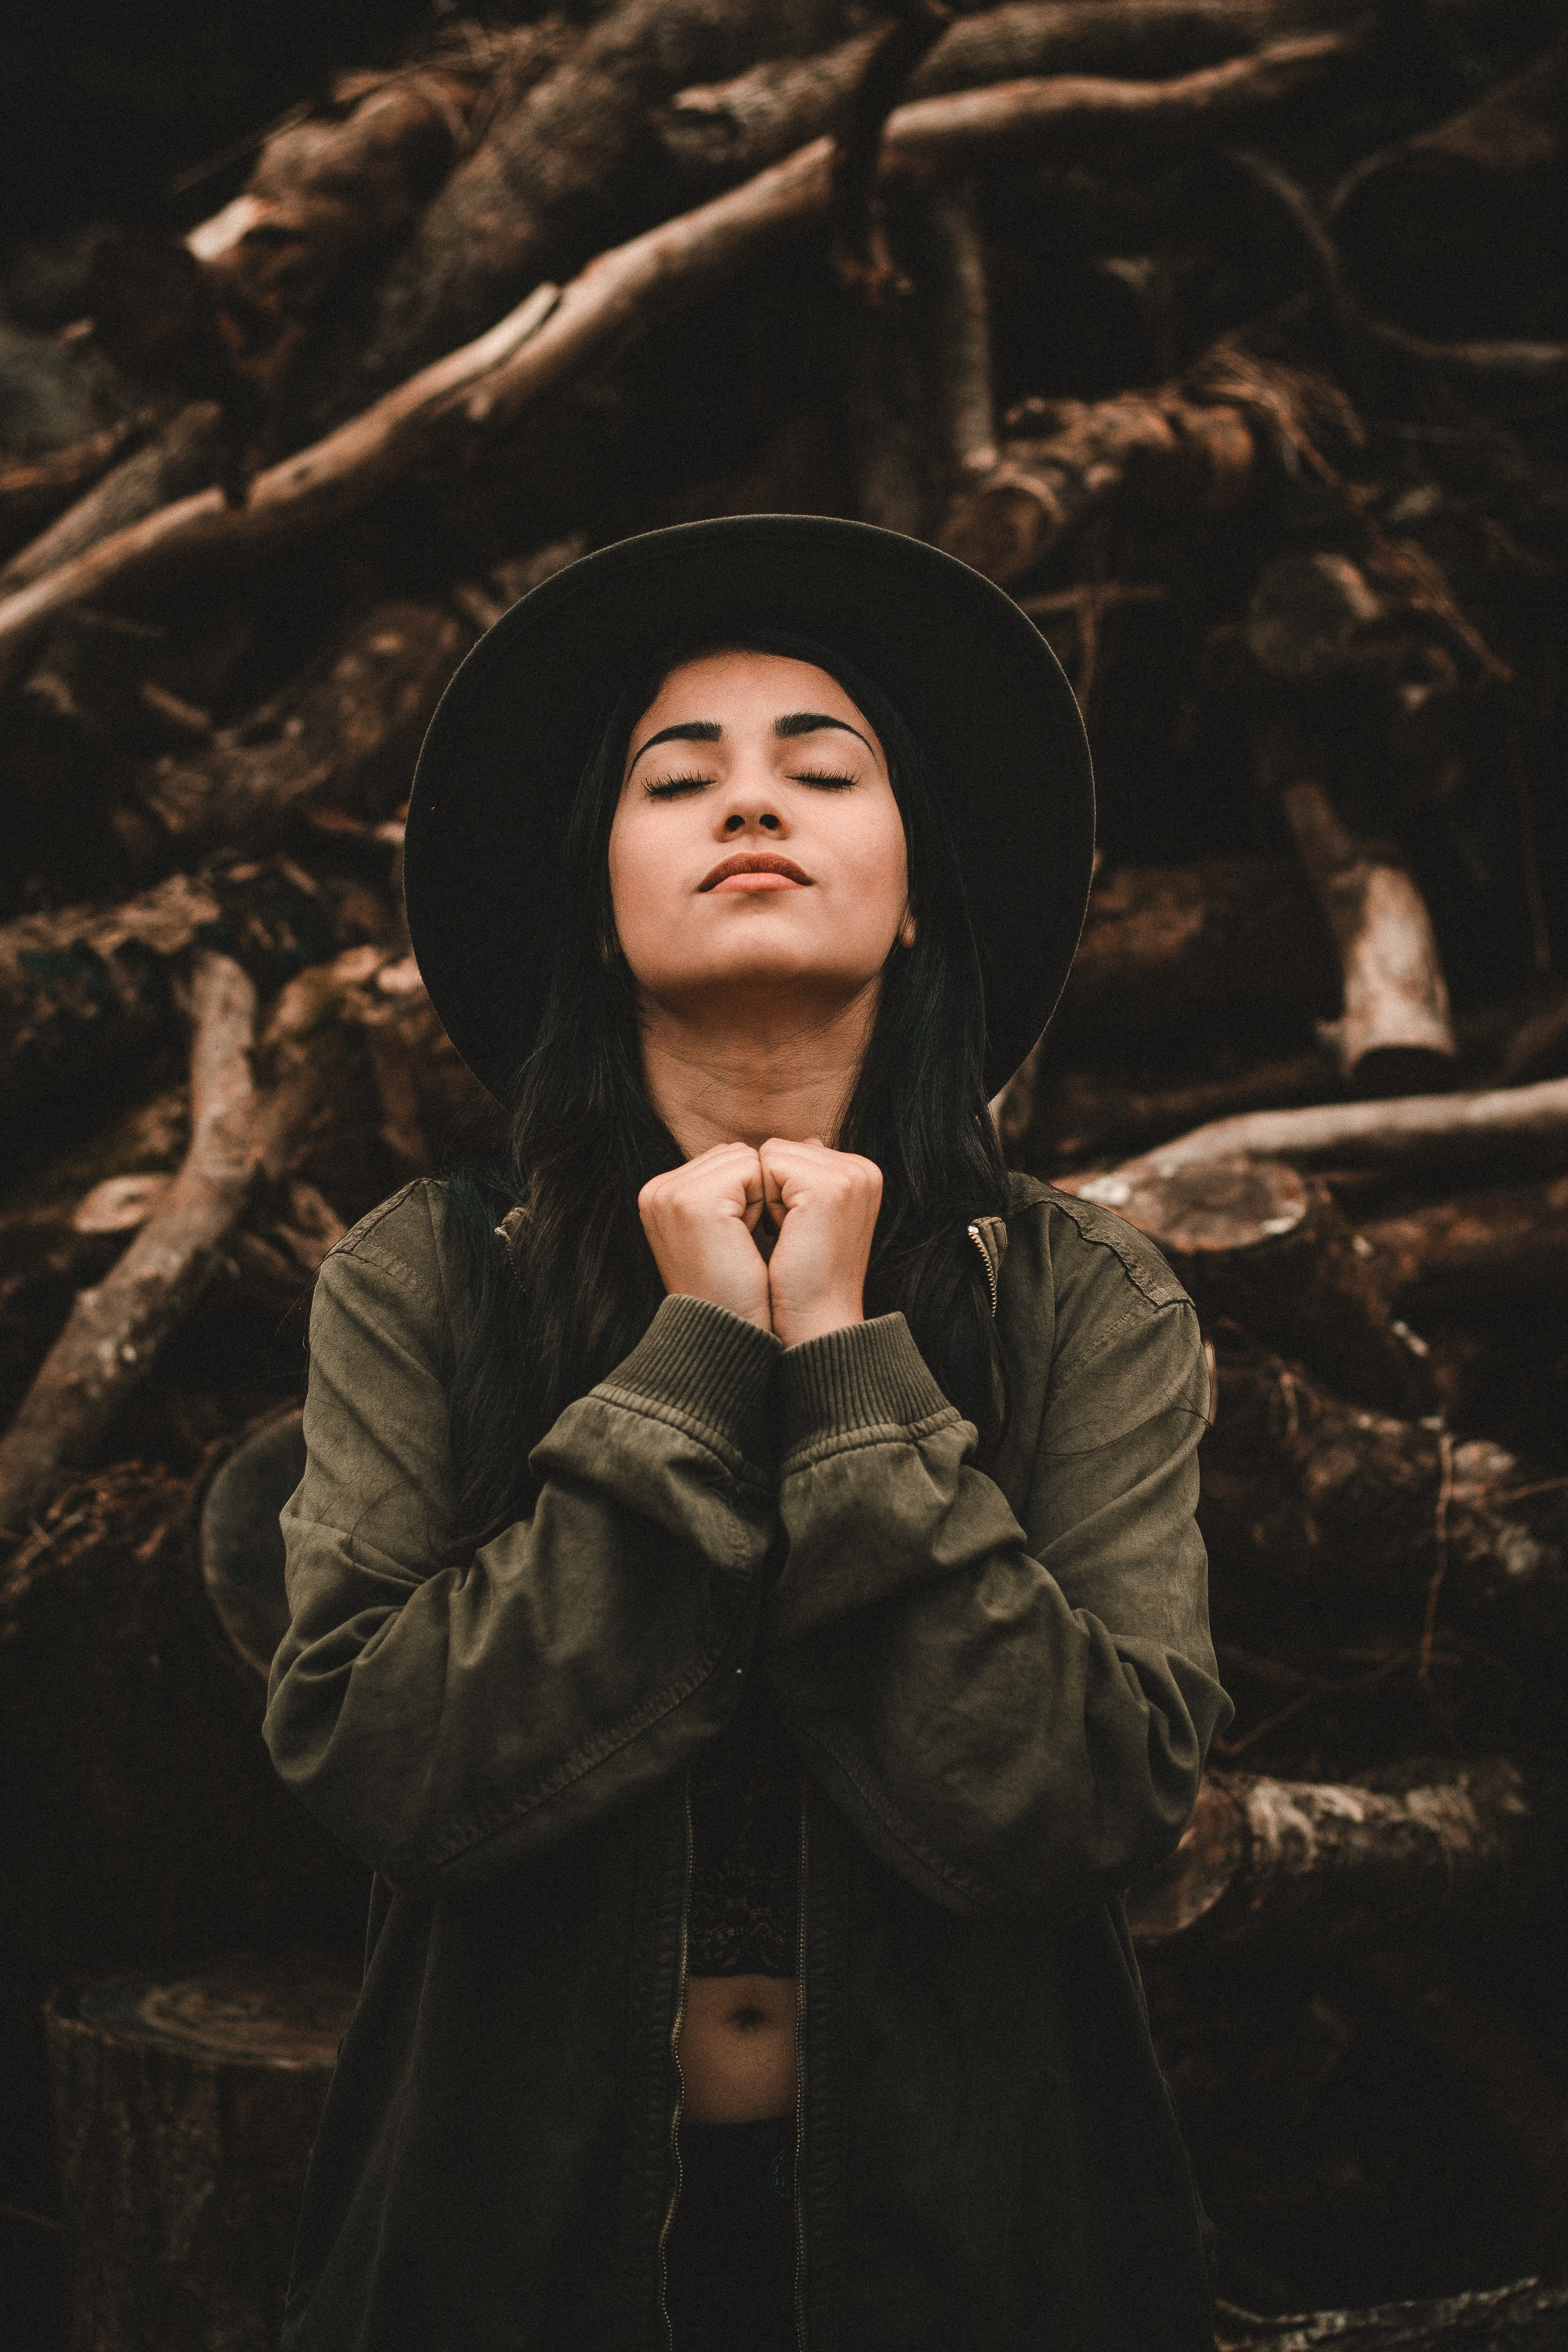 Woman wearing a hat hopefully holding her hands and praying